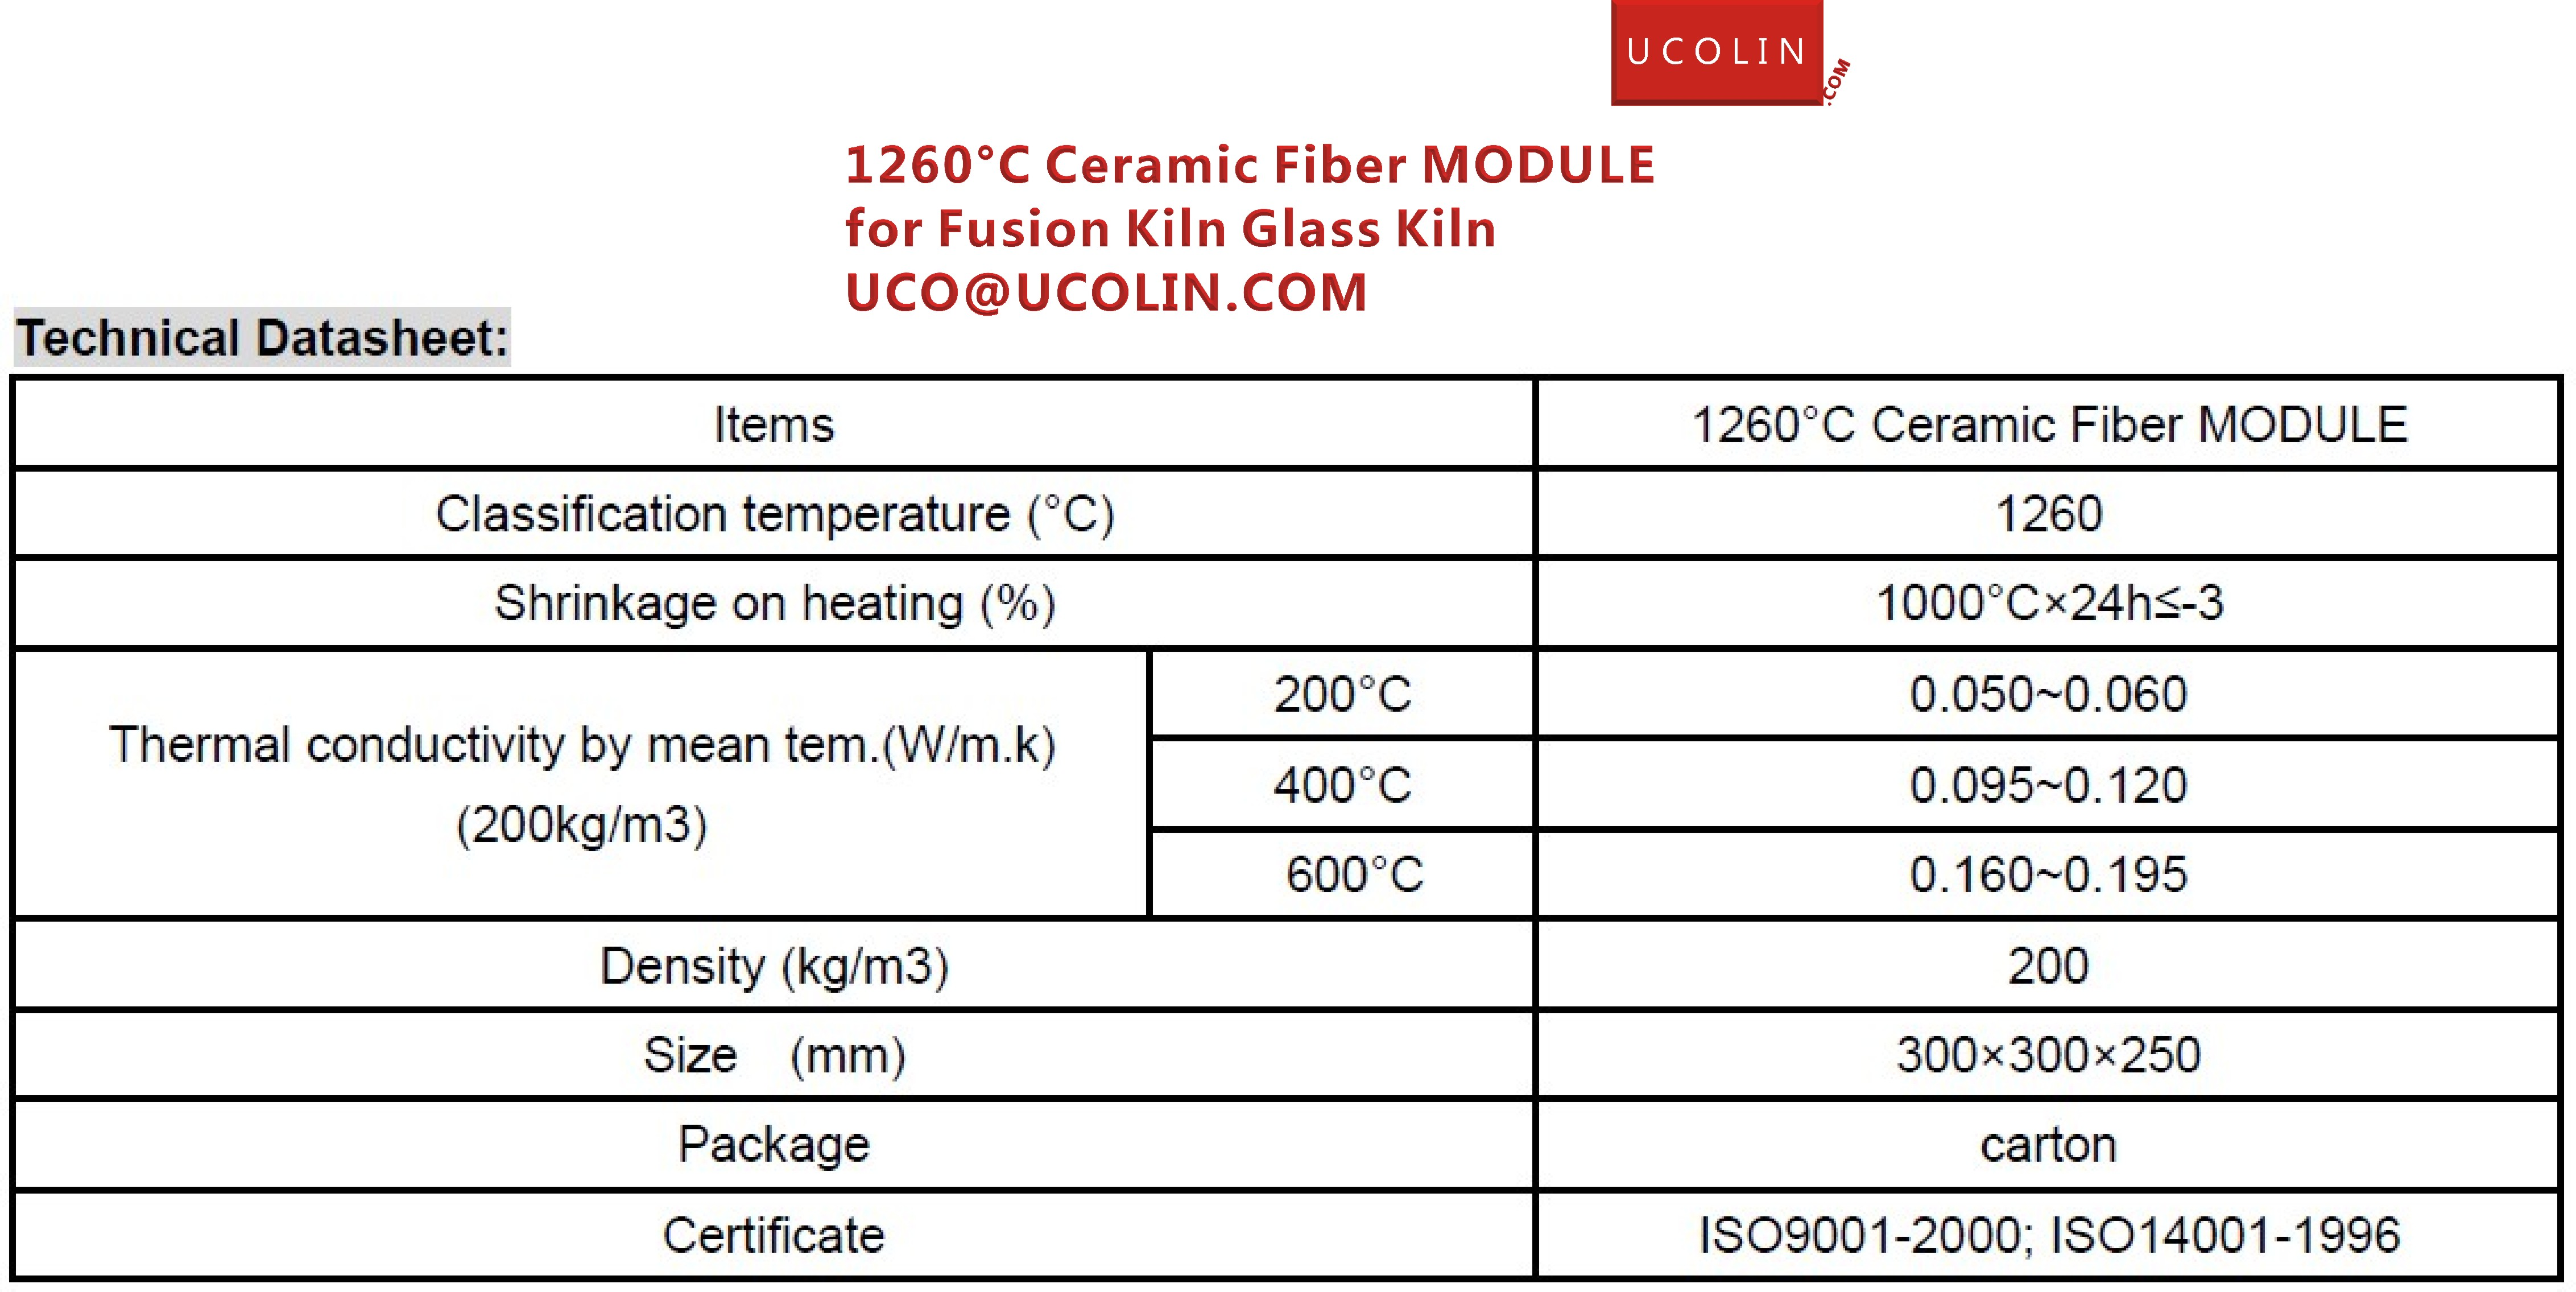 1260°C Ceramic Fiber MODULE for Fusion Kiln Glass Kiln   02